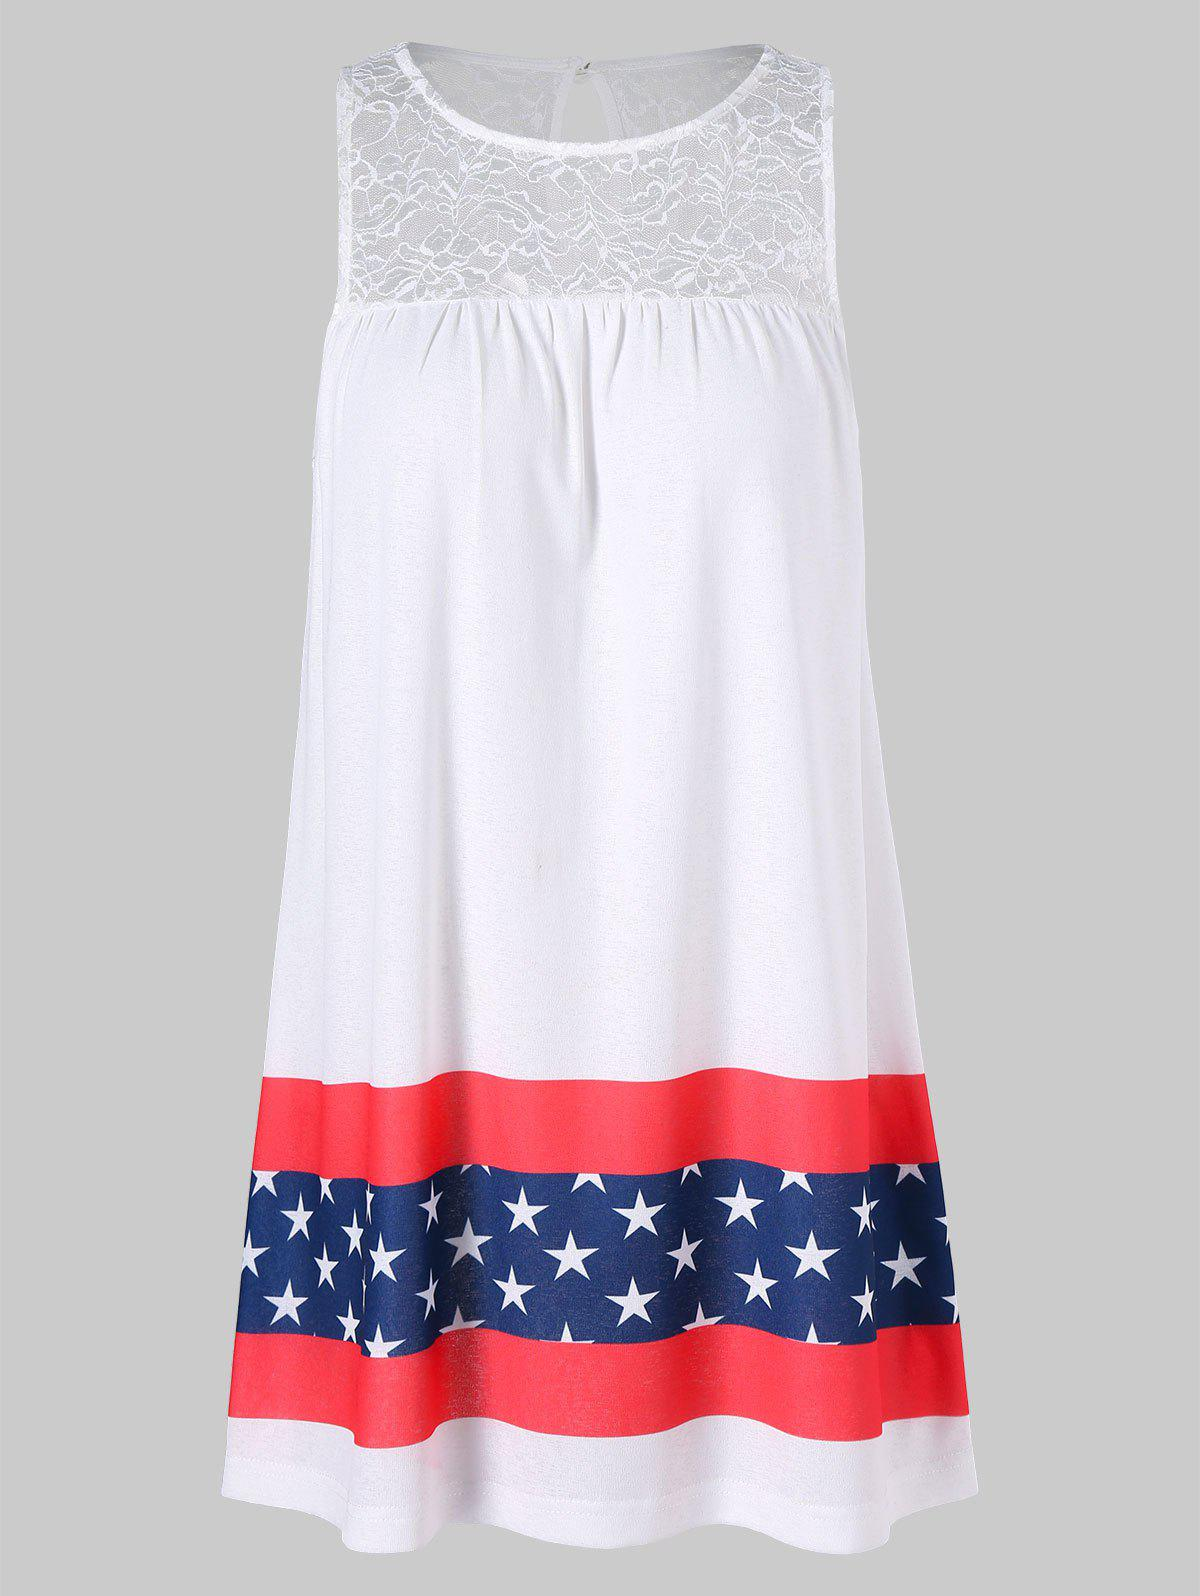 Discount Stars and Stripes Print Sleeveless Dress